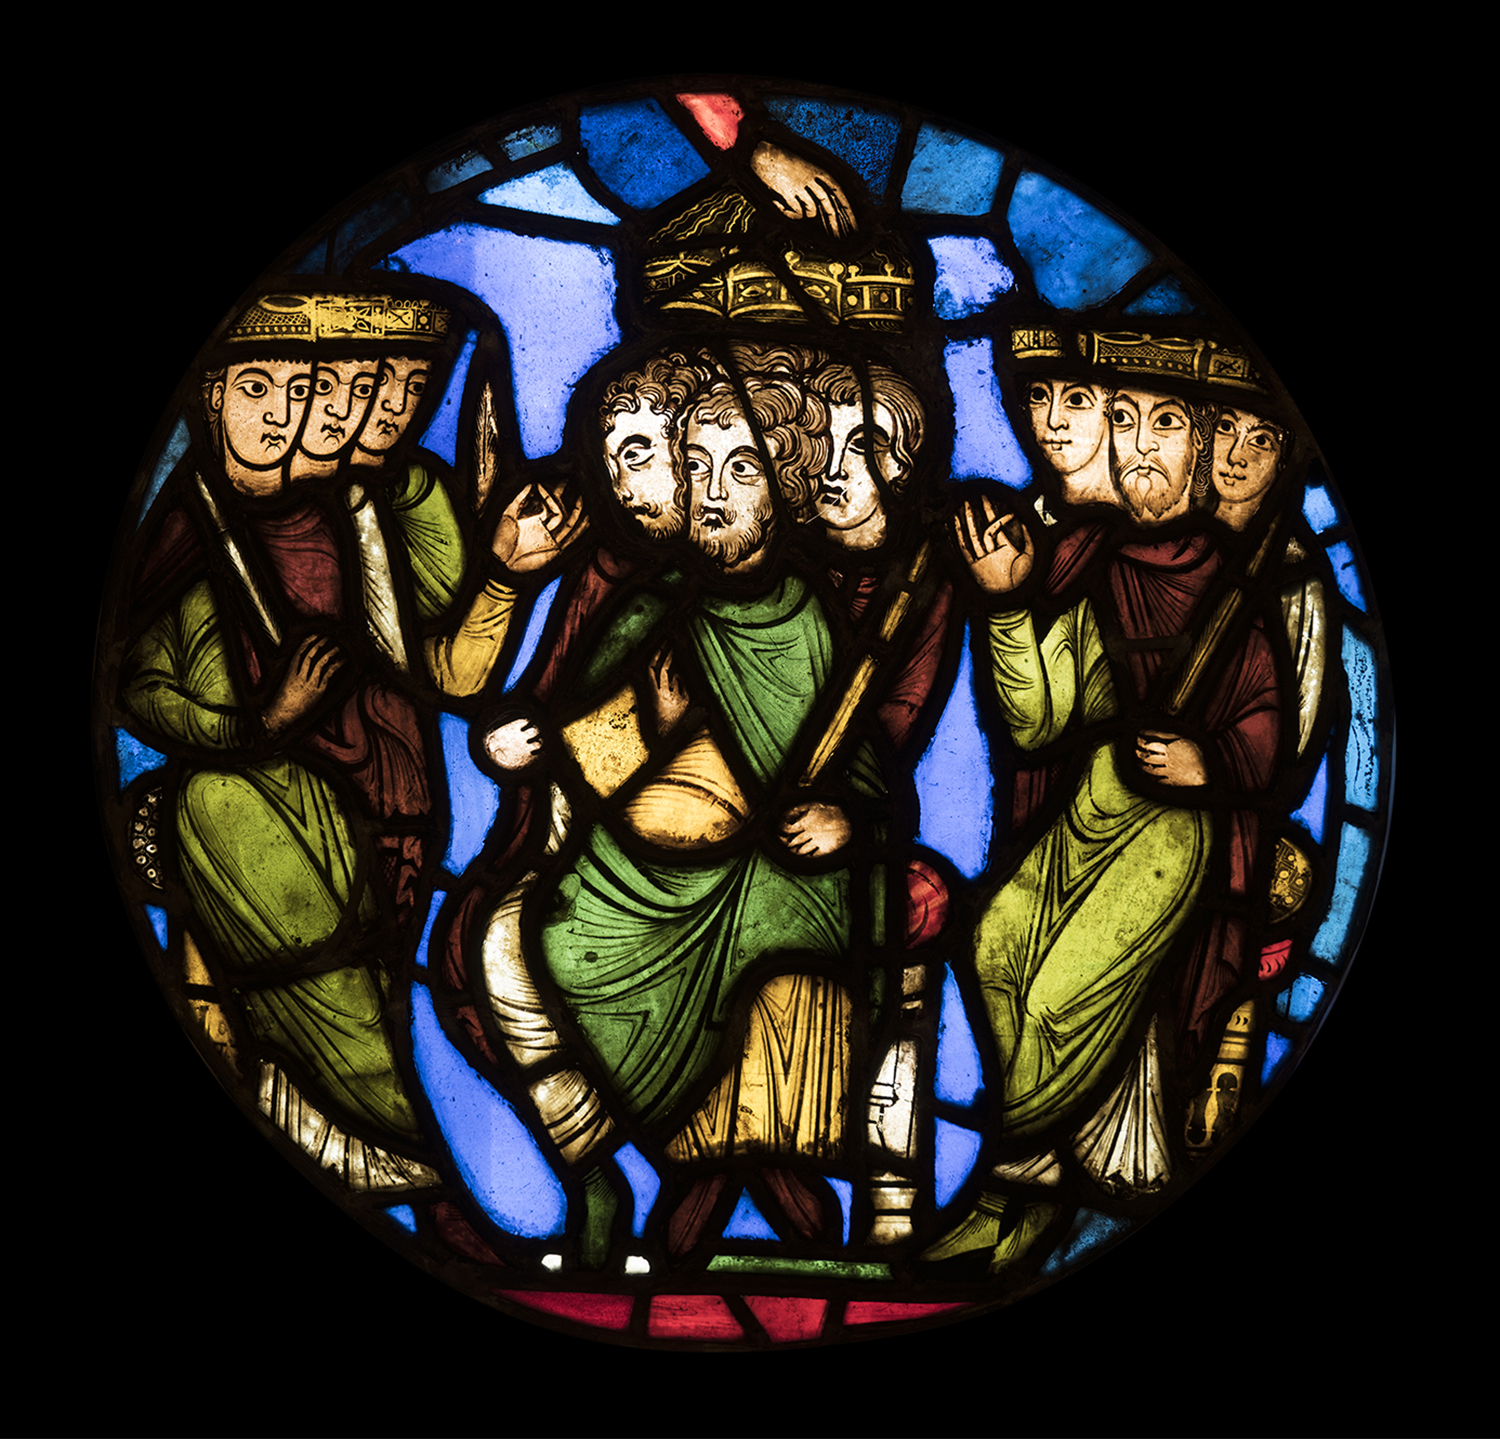 Figure 9:A Coronation Scene, stained-glass panel from the Royal Abbey Church of Saint-Denis, outside Paris, France, c. 1150. The Hand of God in the center crowns three kings (03.SG.111).